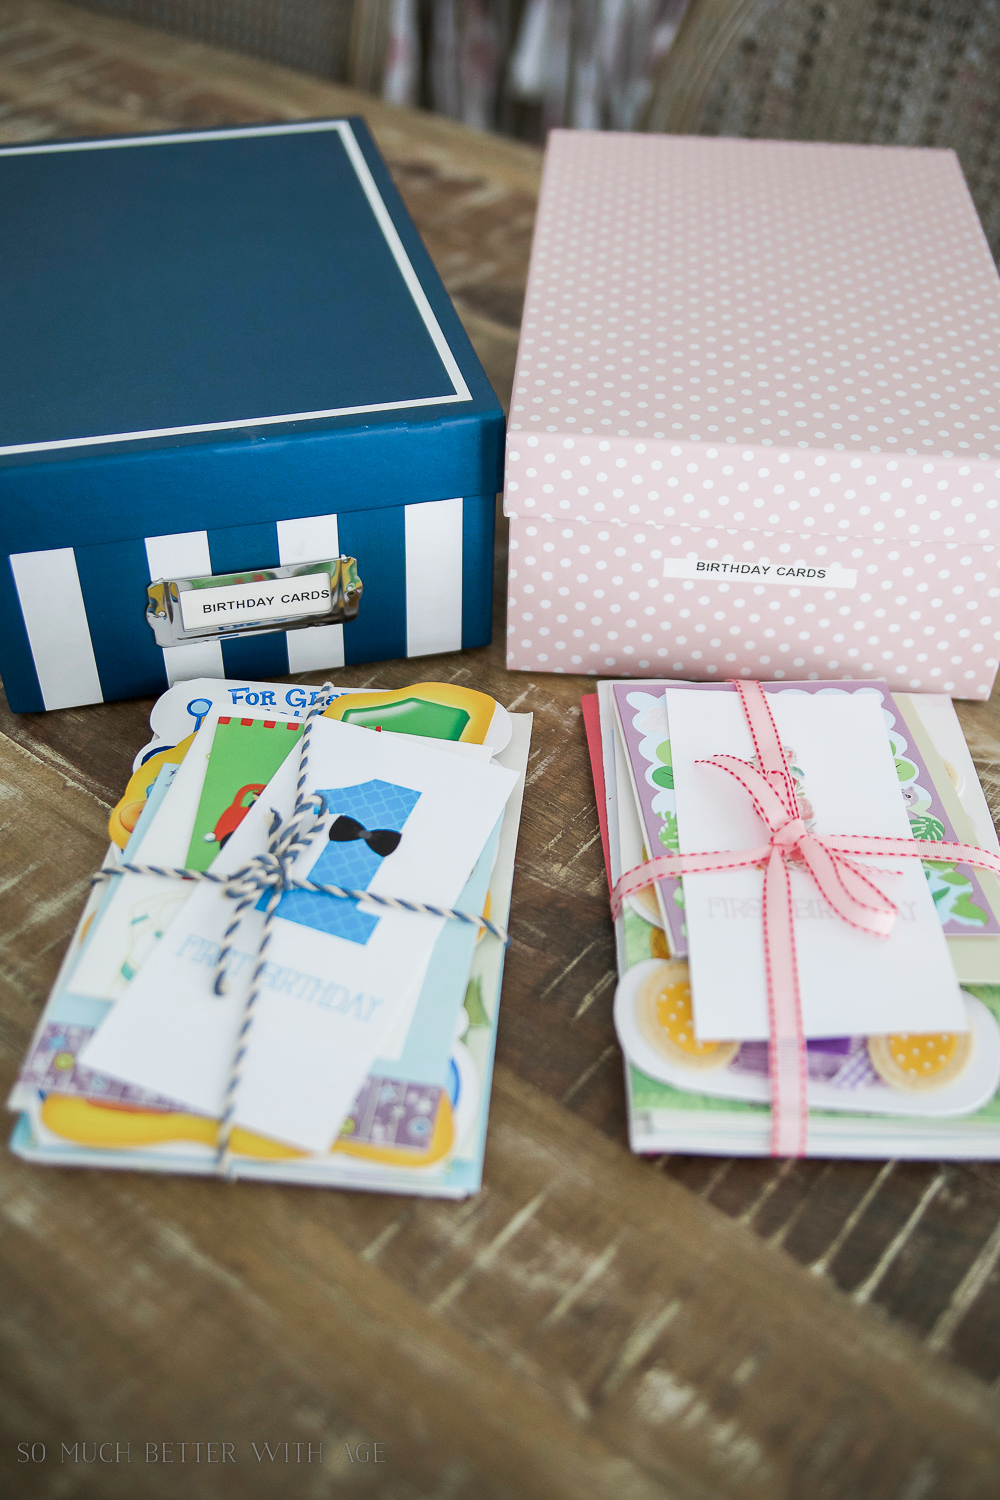 How to Organize Kids' Keepsakes - birthday cards with free printable